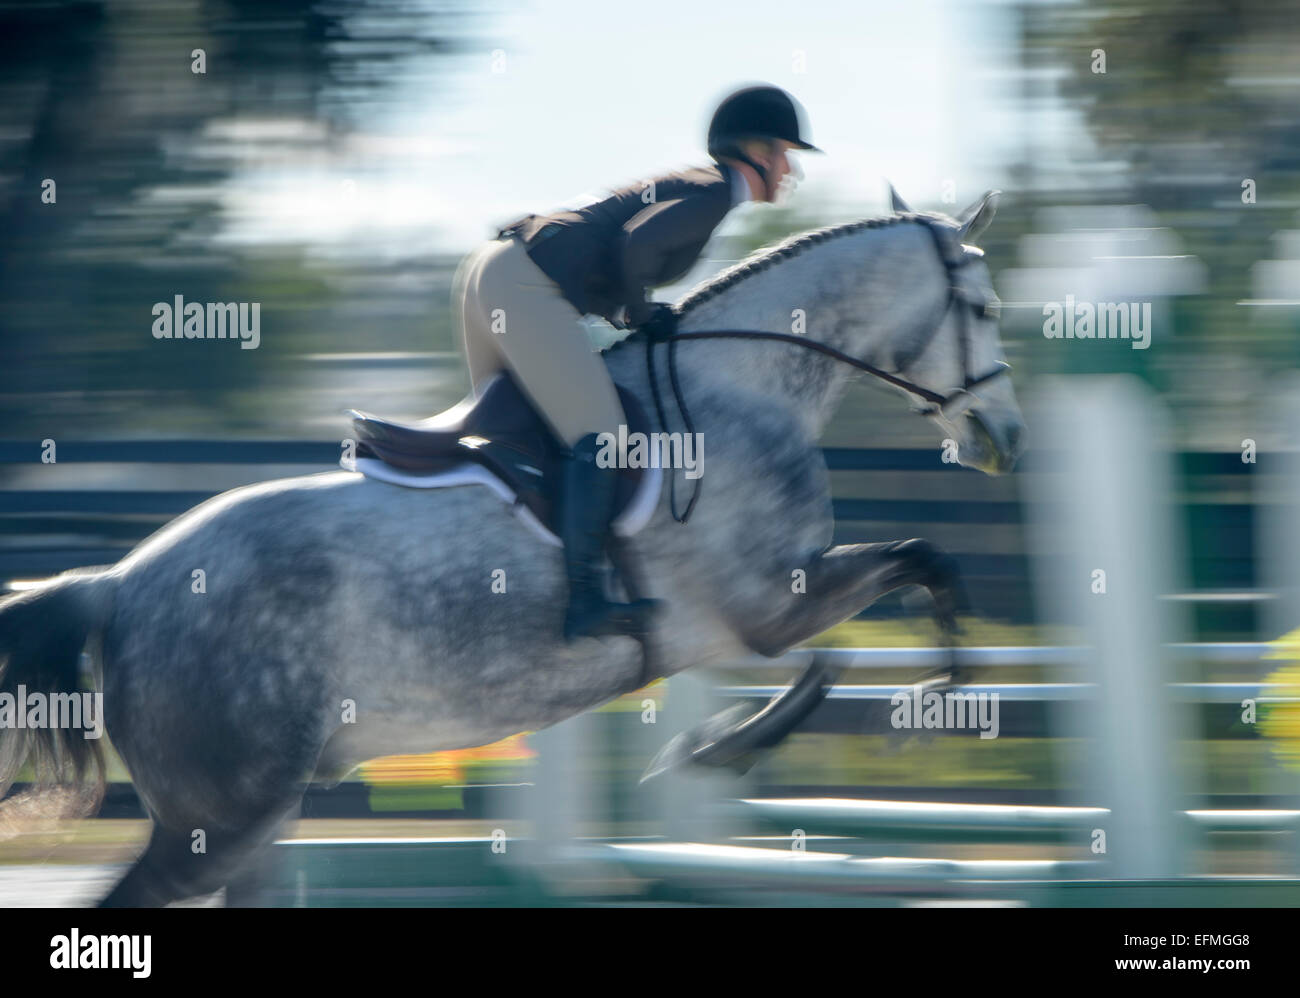 Show Jumping concorrenza Immagini Stock